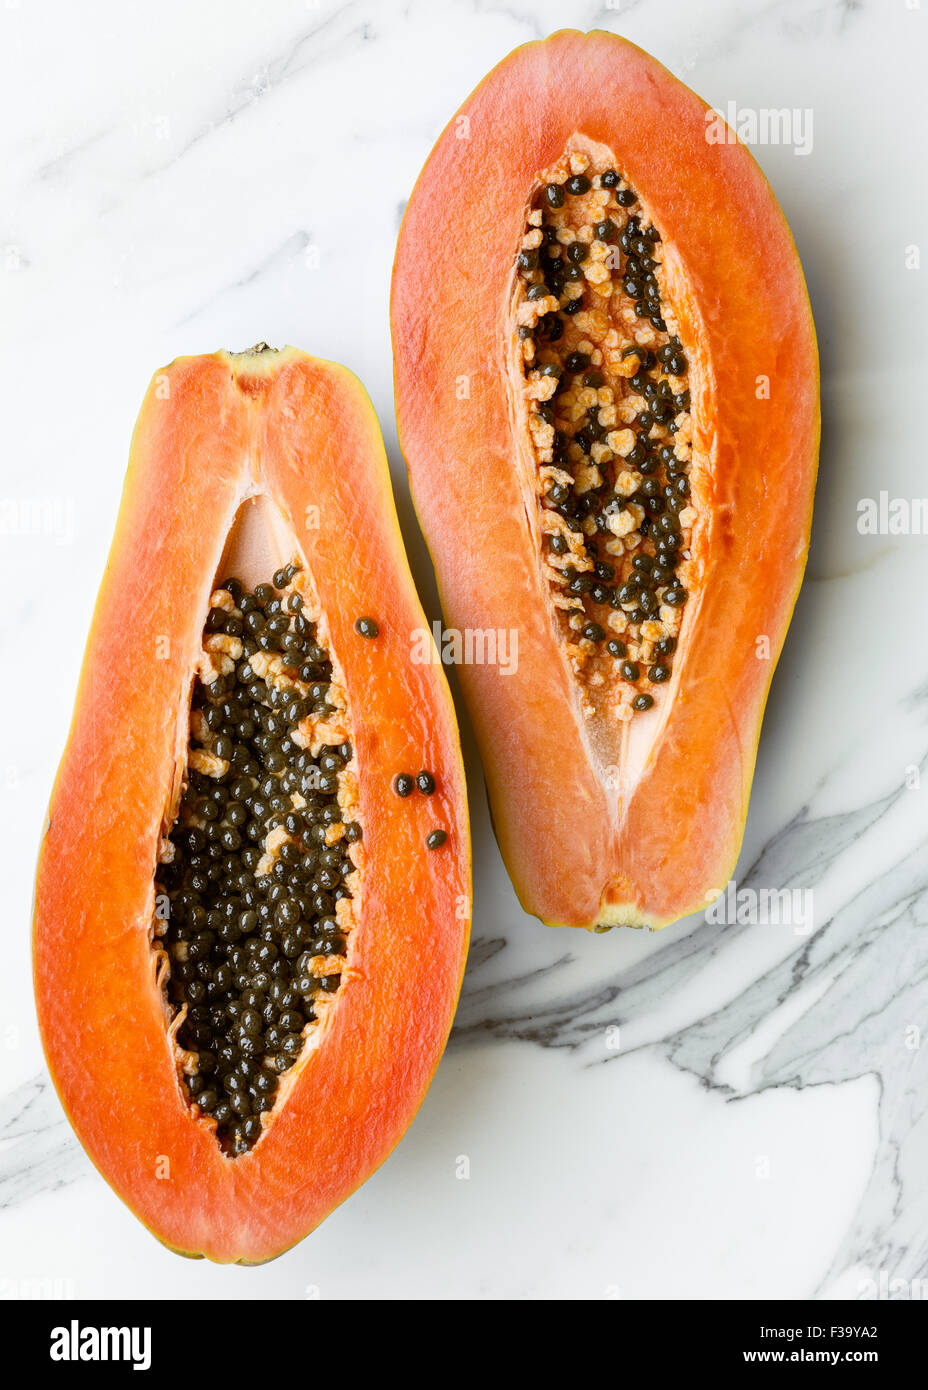 A Papaya cut in half on marble surface Stock Photo